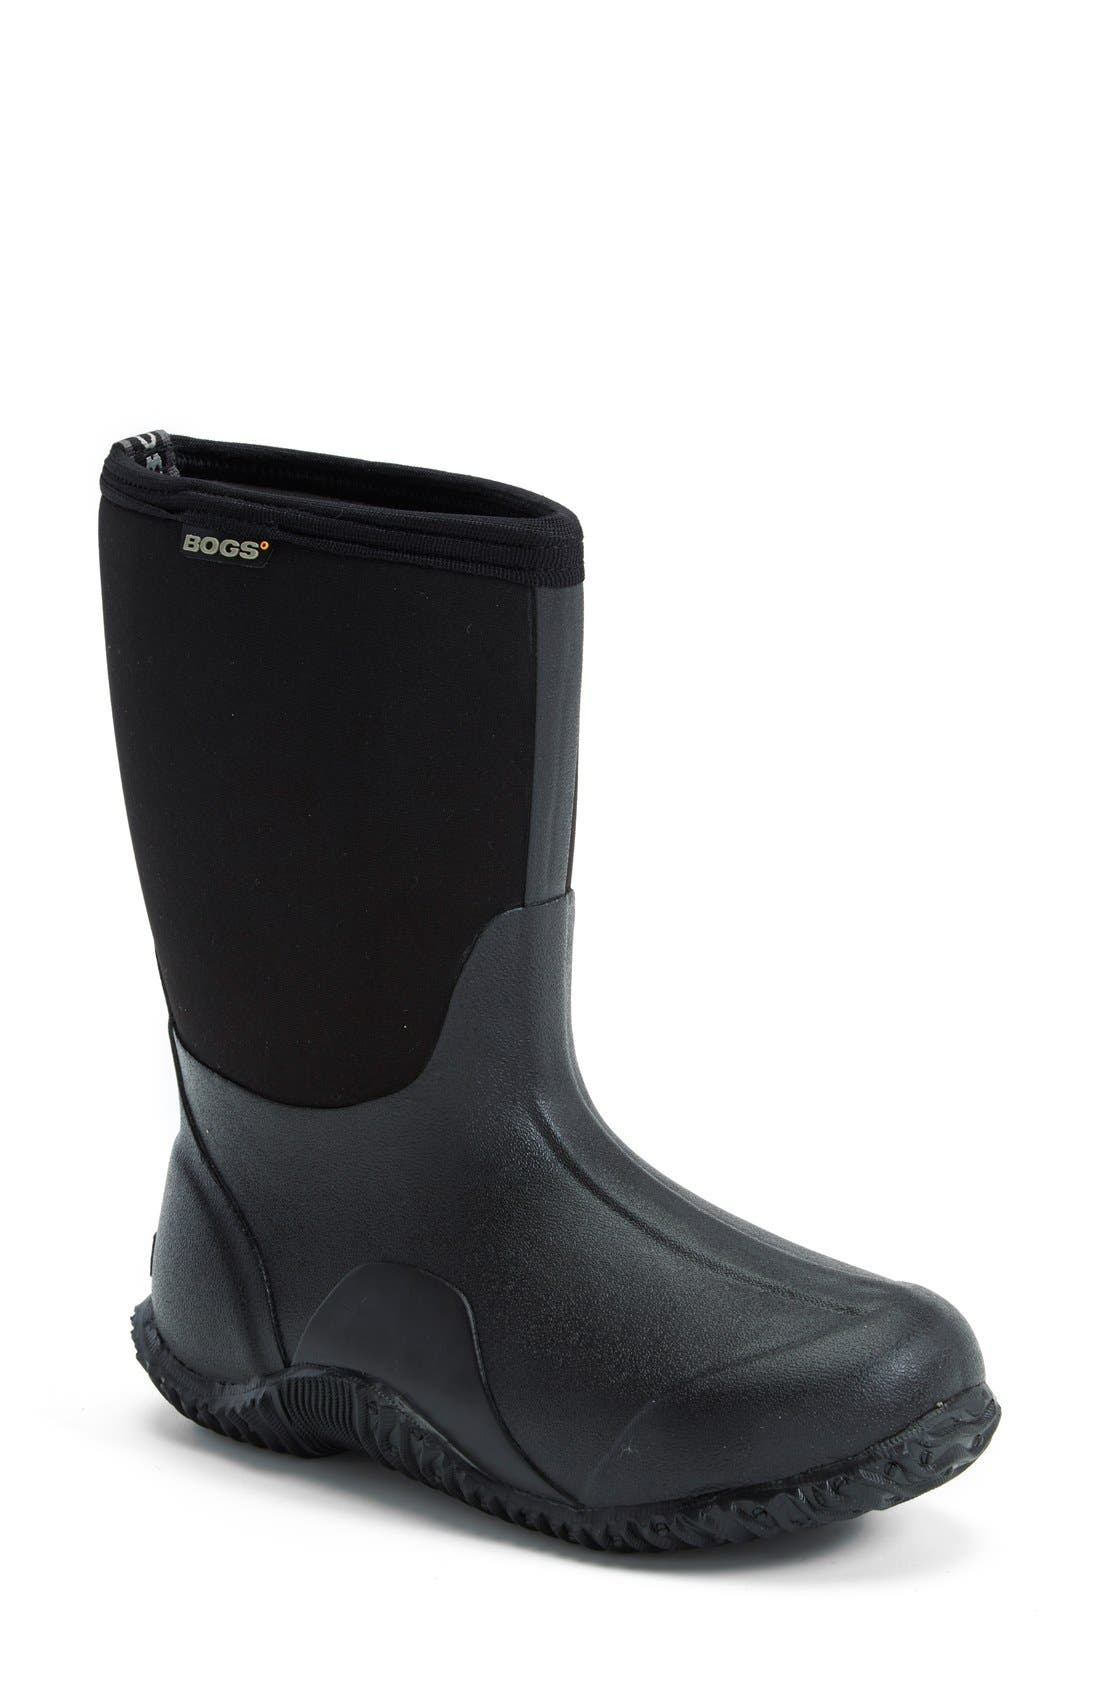 BOGS 'Classic' Mid High Waterproof Snow Boot